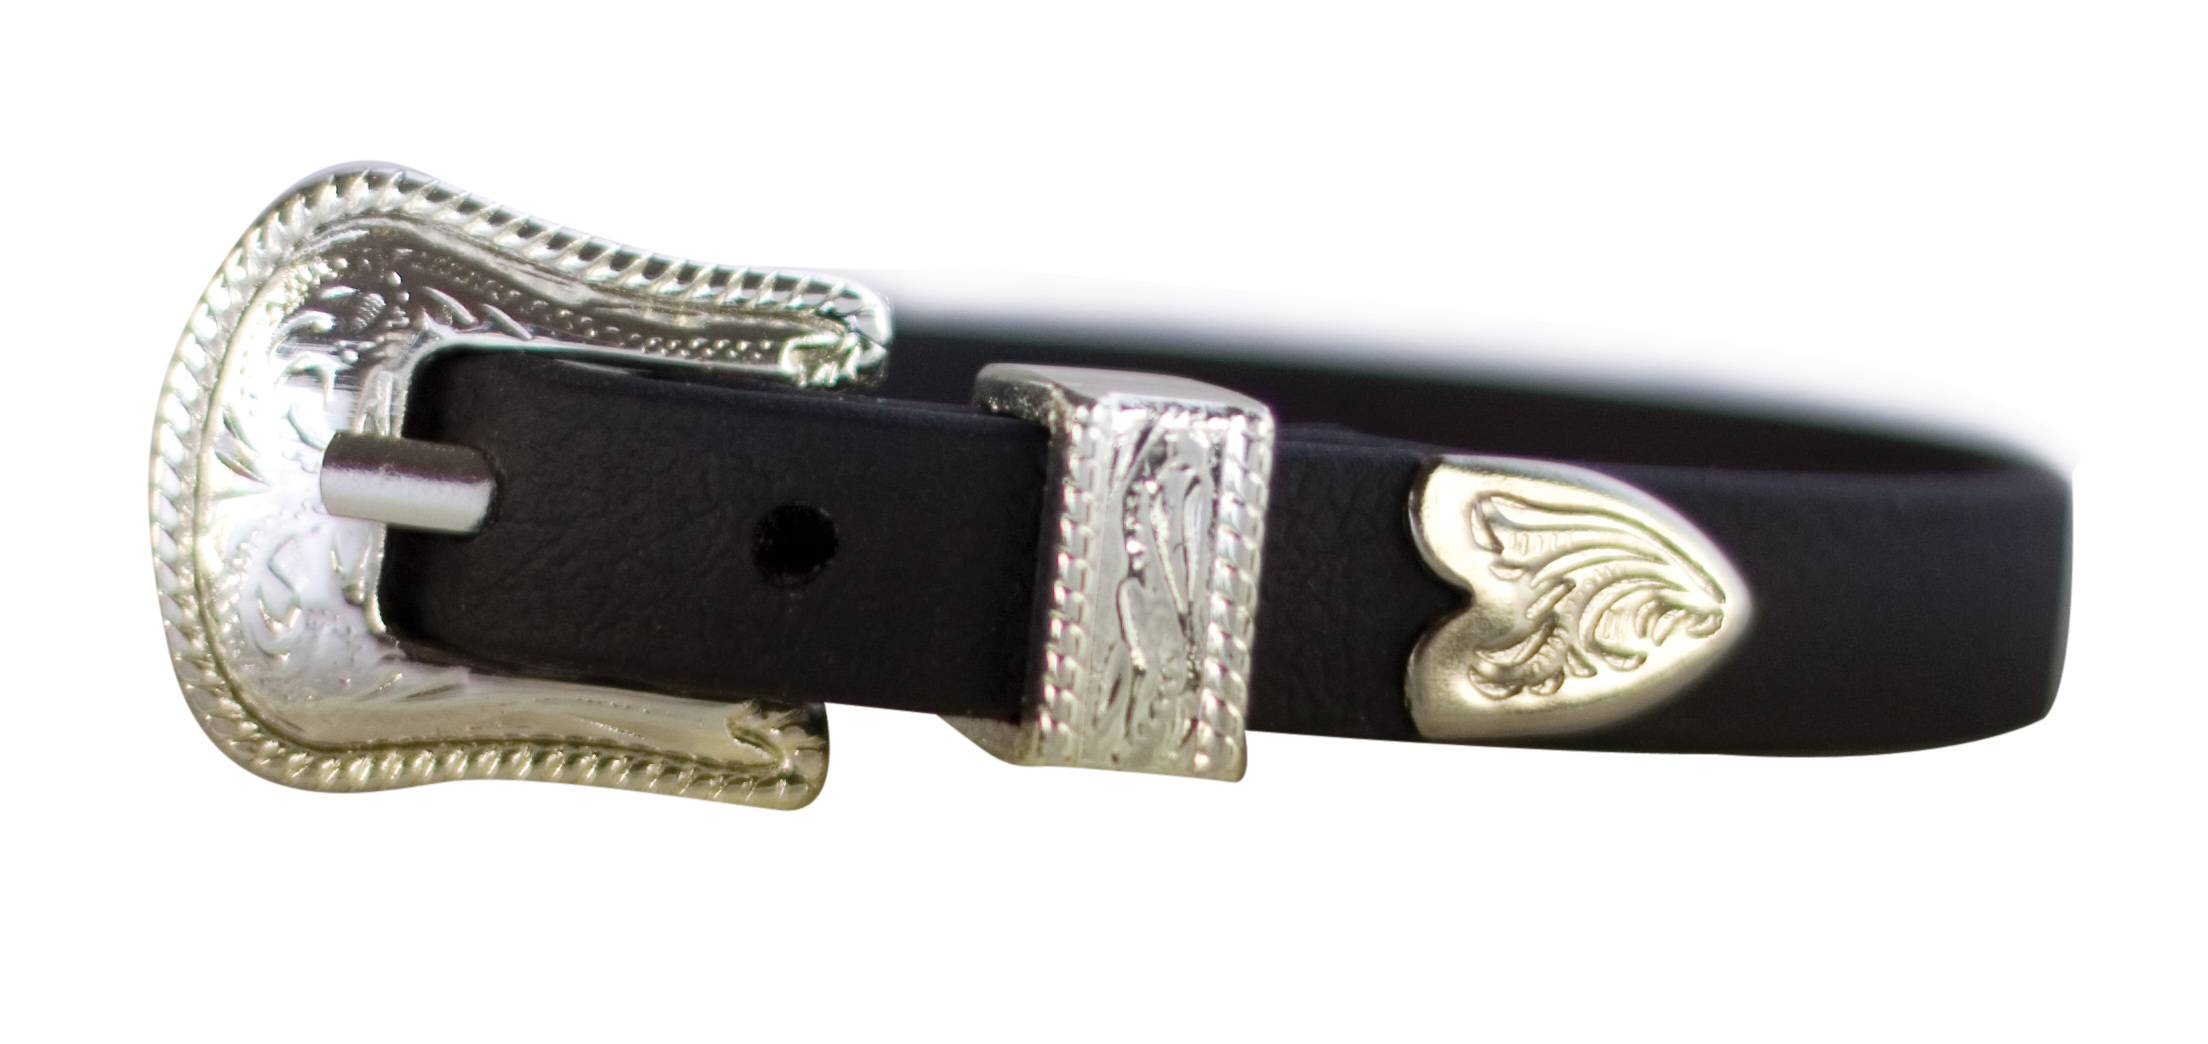 Perri's Leather Bracelet with Silver Buckle